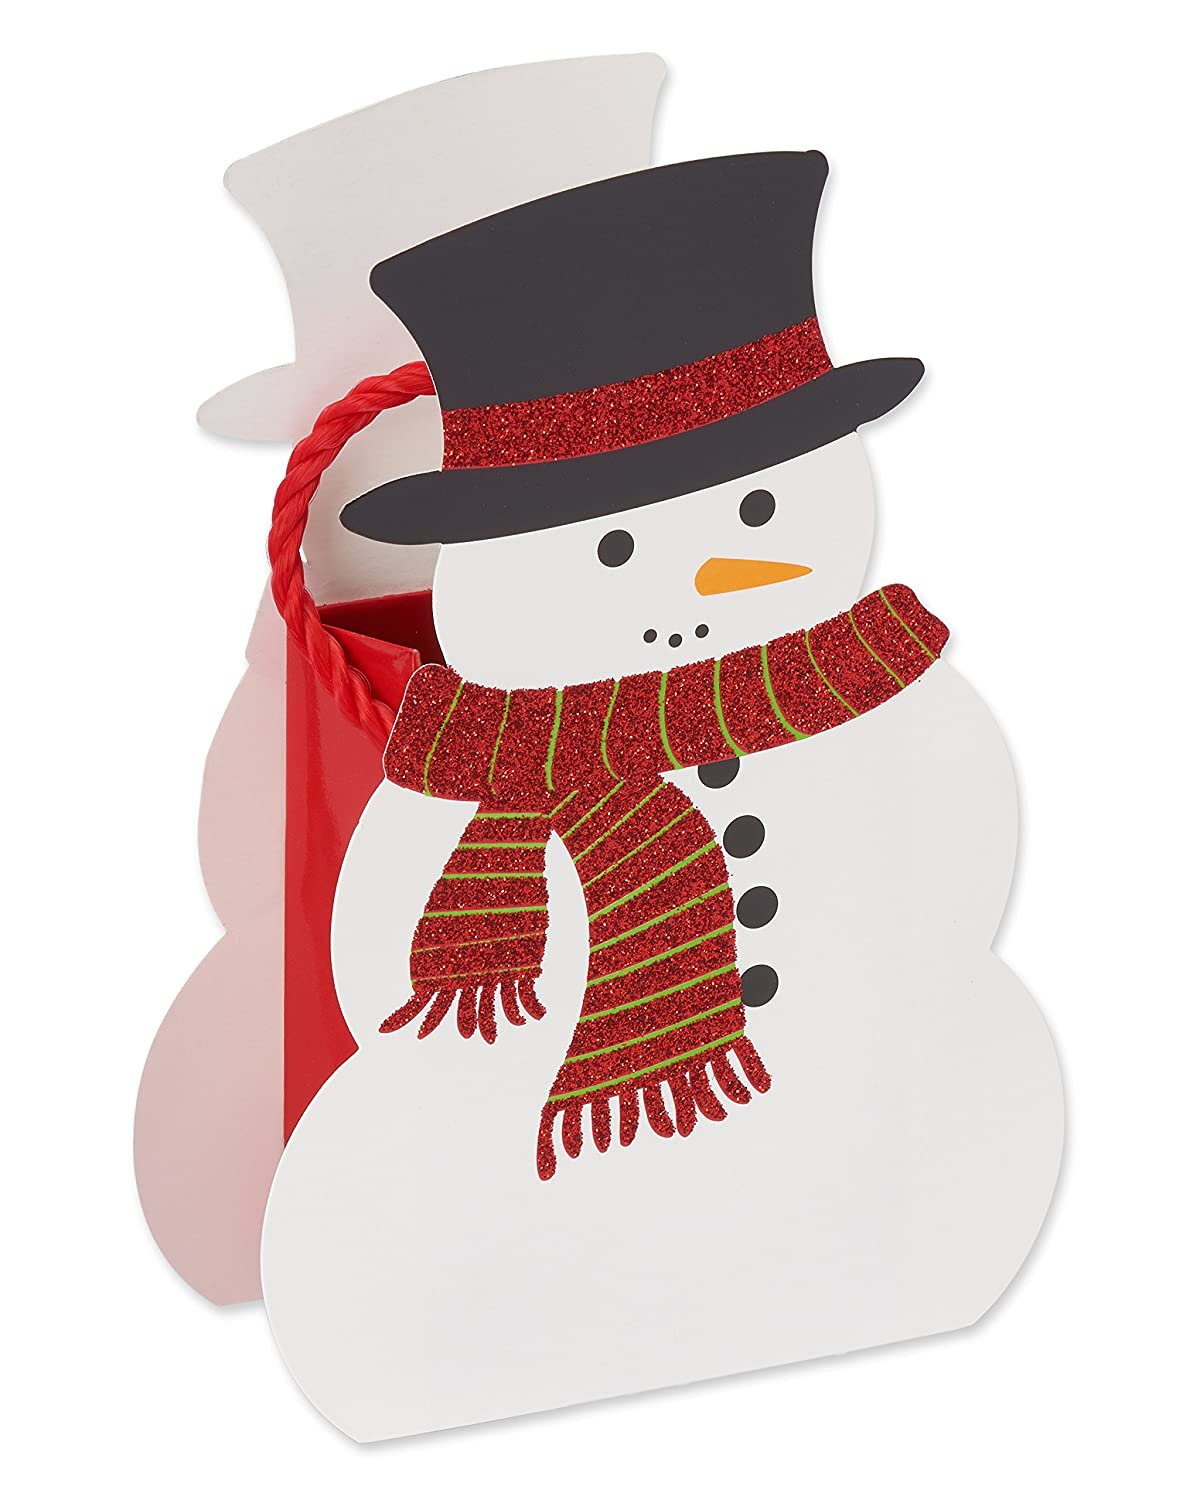 American Greetings 5596049 Holiday Snowman Gift Card Holder, Multicolor